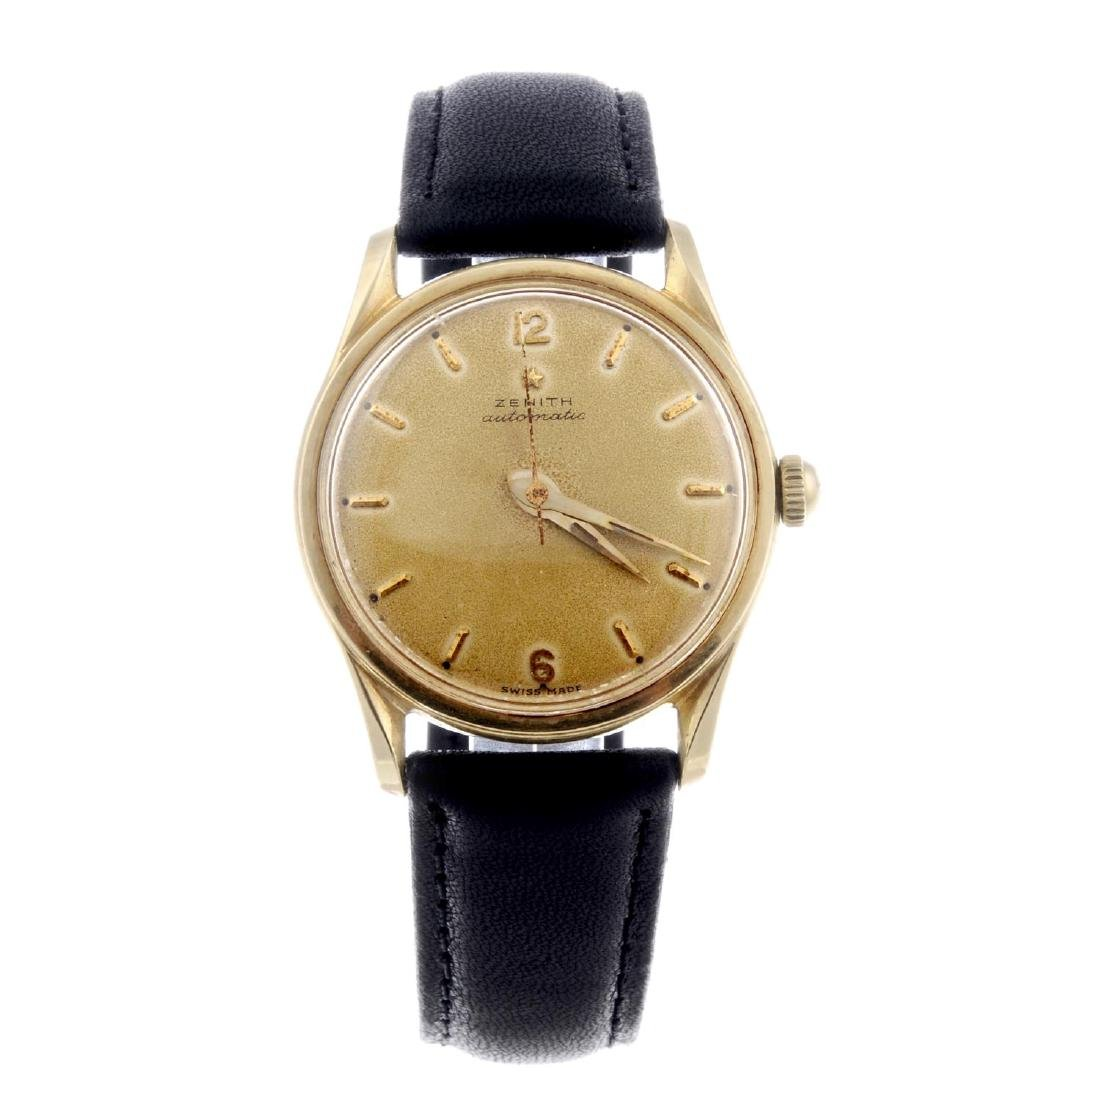 ZENITH - a gentleman's wrist watch. Yellow metal case,